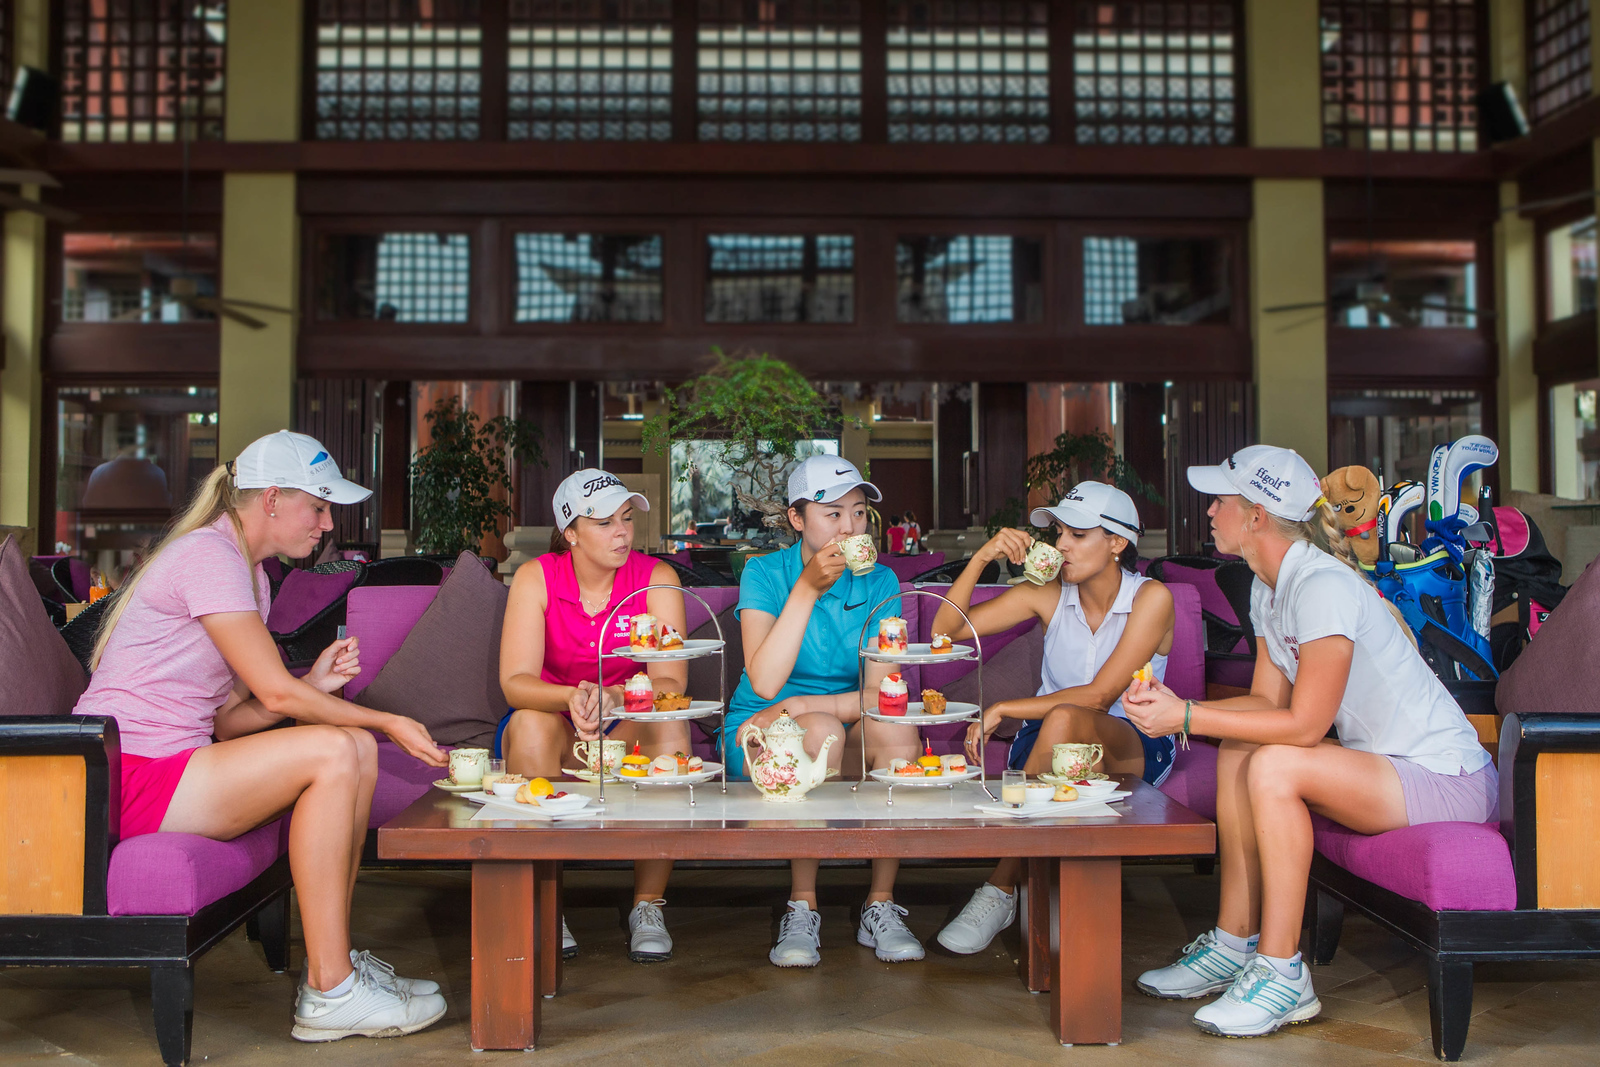 Simin Feng, Emma Nilsson, Camille Chevalier, Victoria Lovelady and Valdis Thora Jonsdottir,  at the Ritz Carlton Yalong Bay in Sanya, China